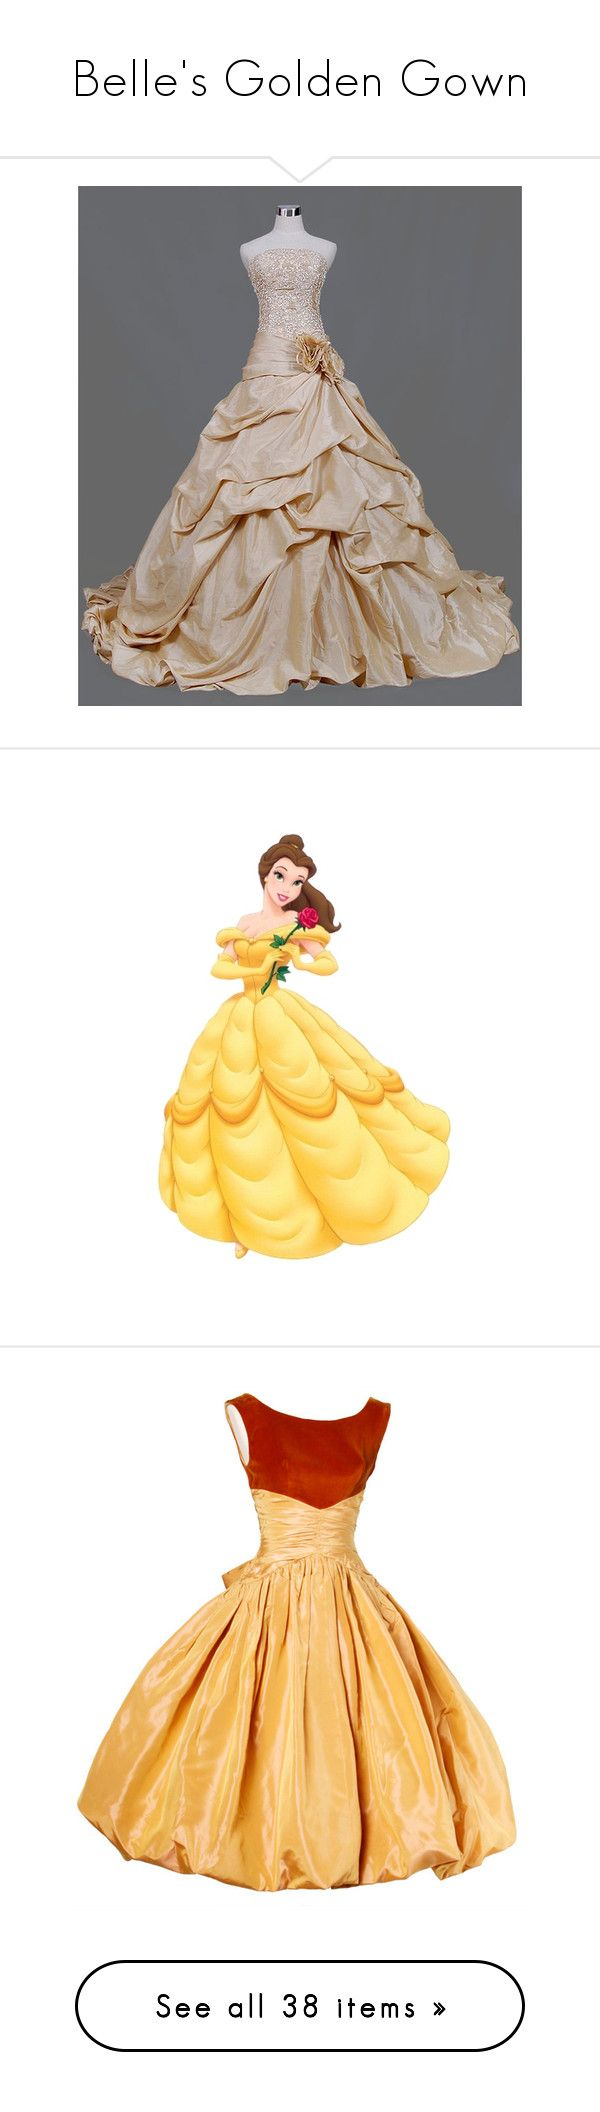 """Belle's Golden Gown"" by glendolyne ❤ liked on Polyvore featuring dresses, gowns, long dresses, wedding dresses, belle, beige dress, beige long dress, wedding, disney and characters"